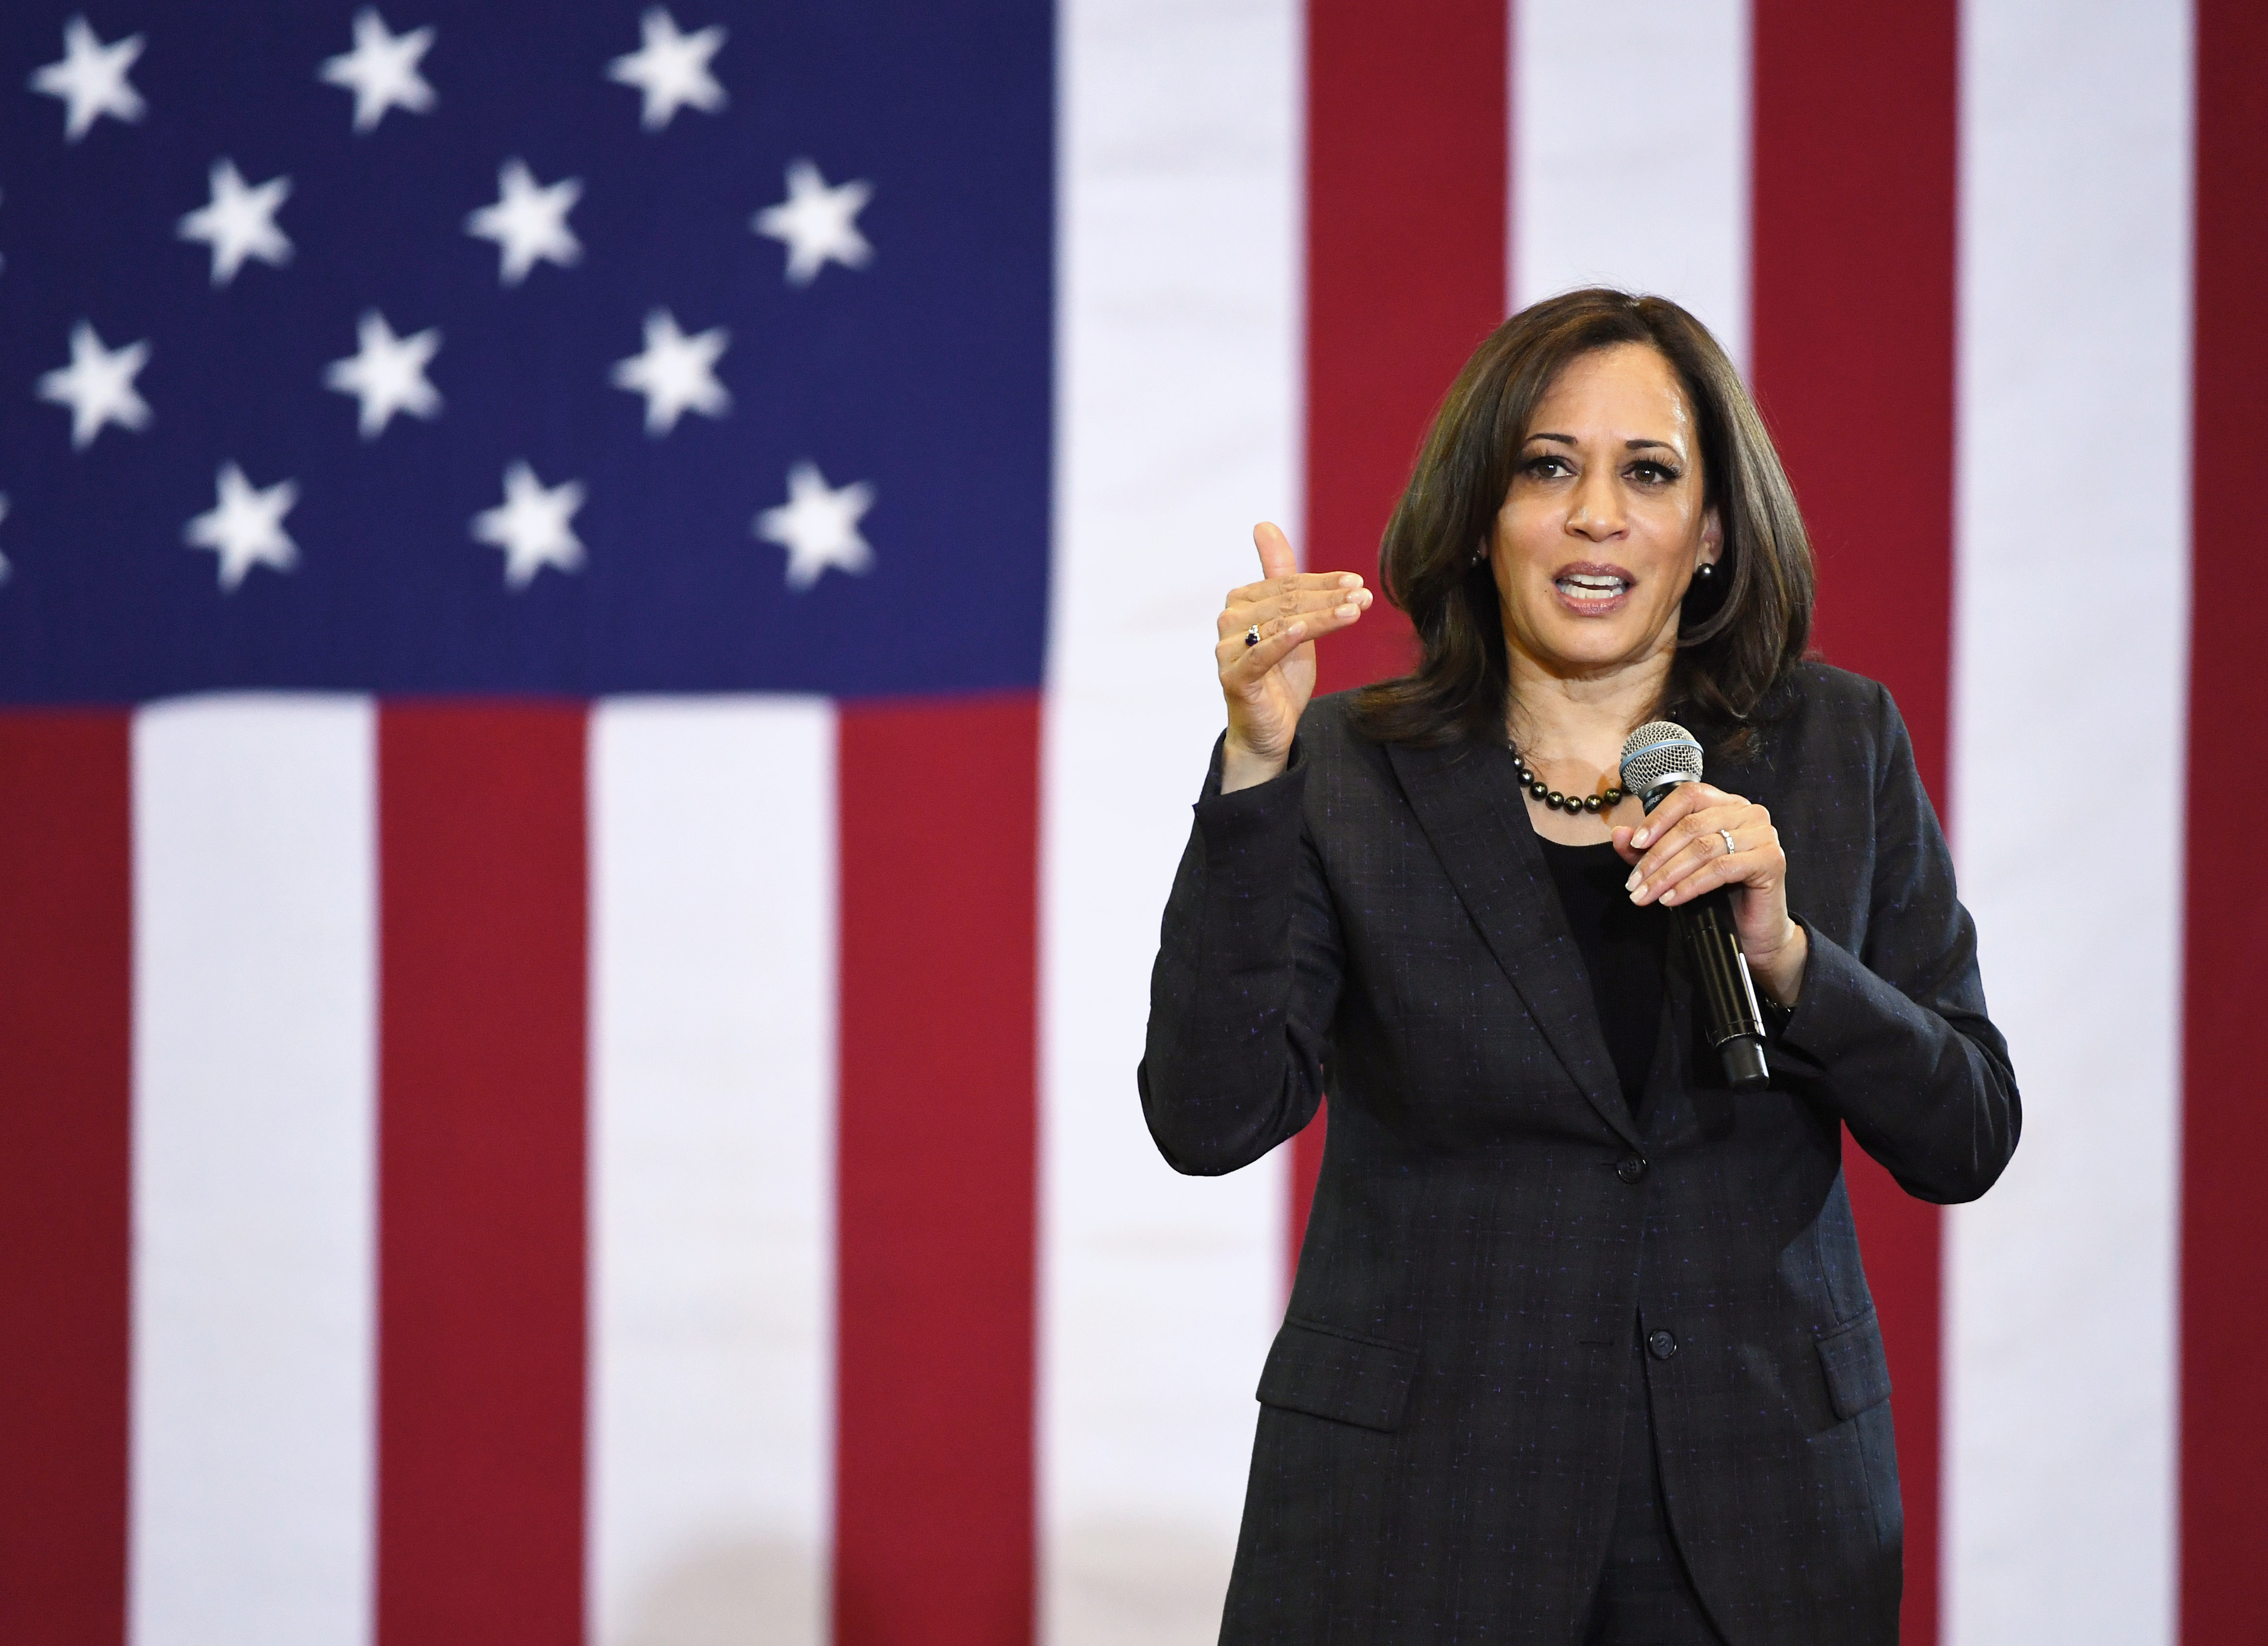 California Sen. Kamala Harris speaks during a town hall meeting at Canyon Springs High School on March 1, 2019 in North Las Vegas, Nevada.